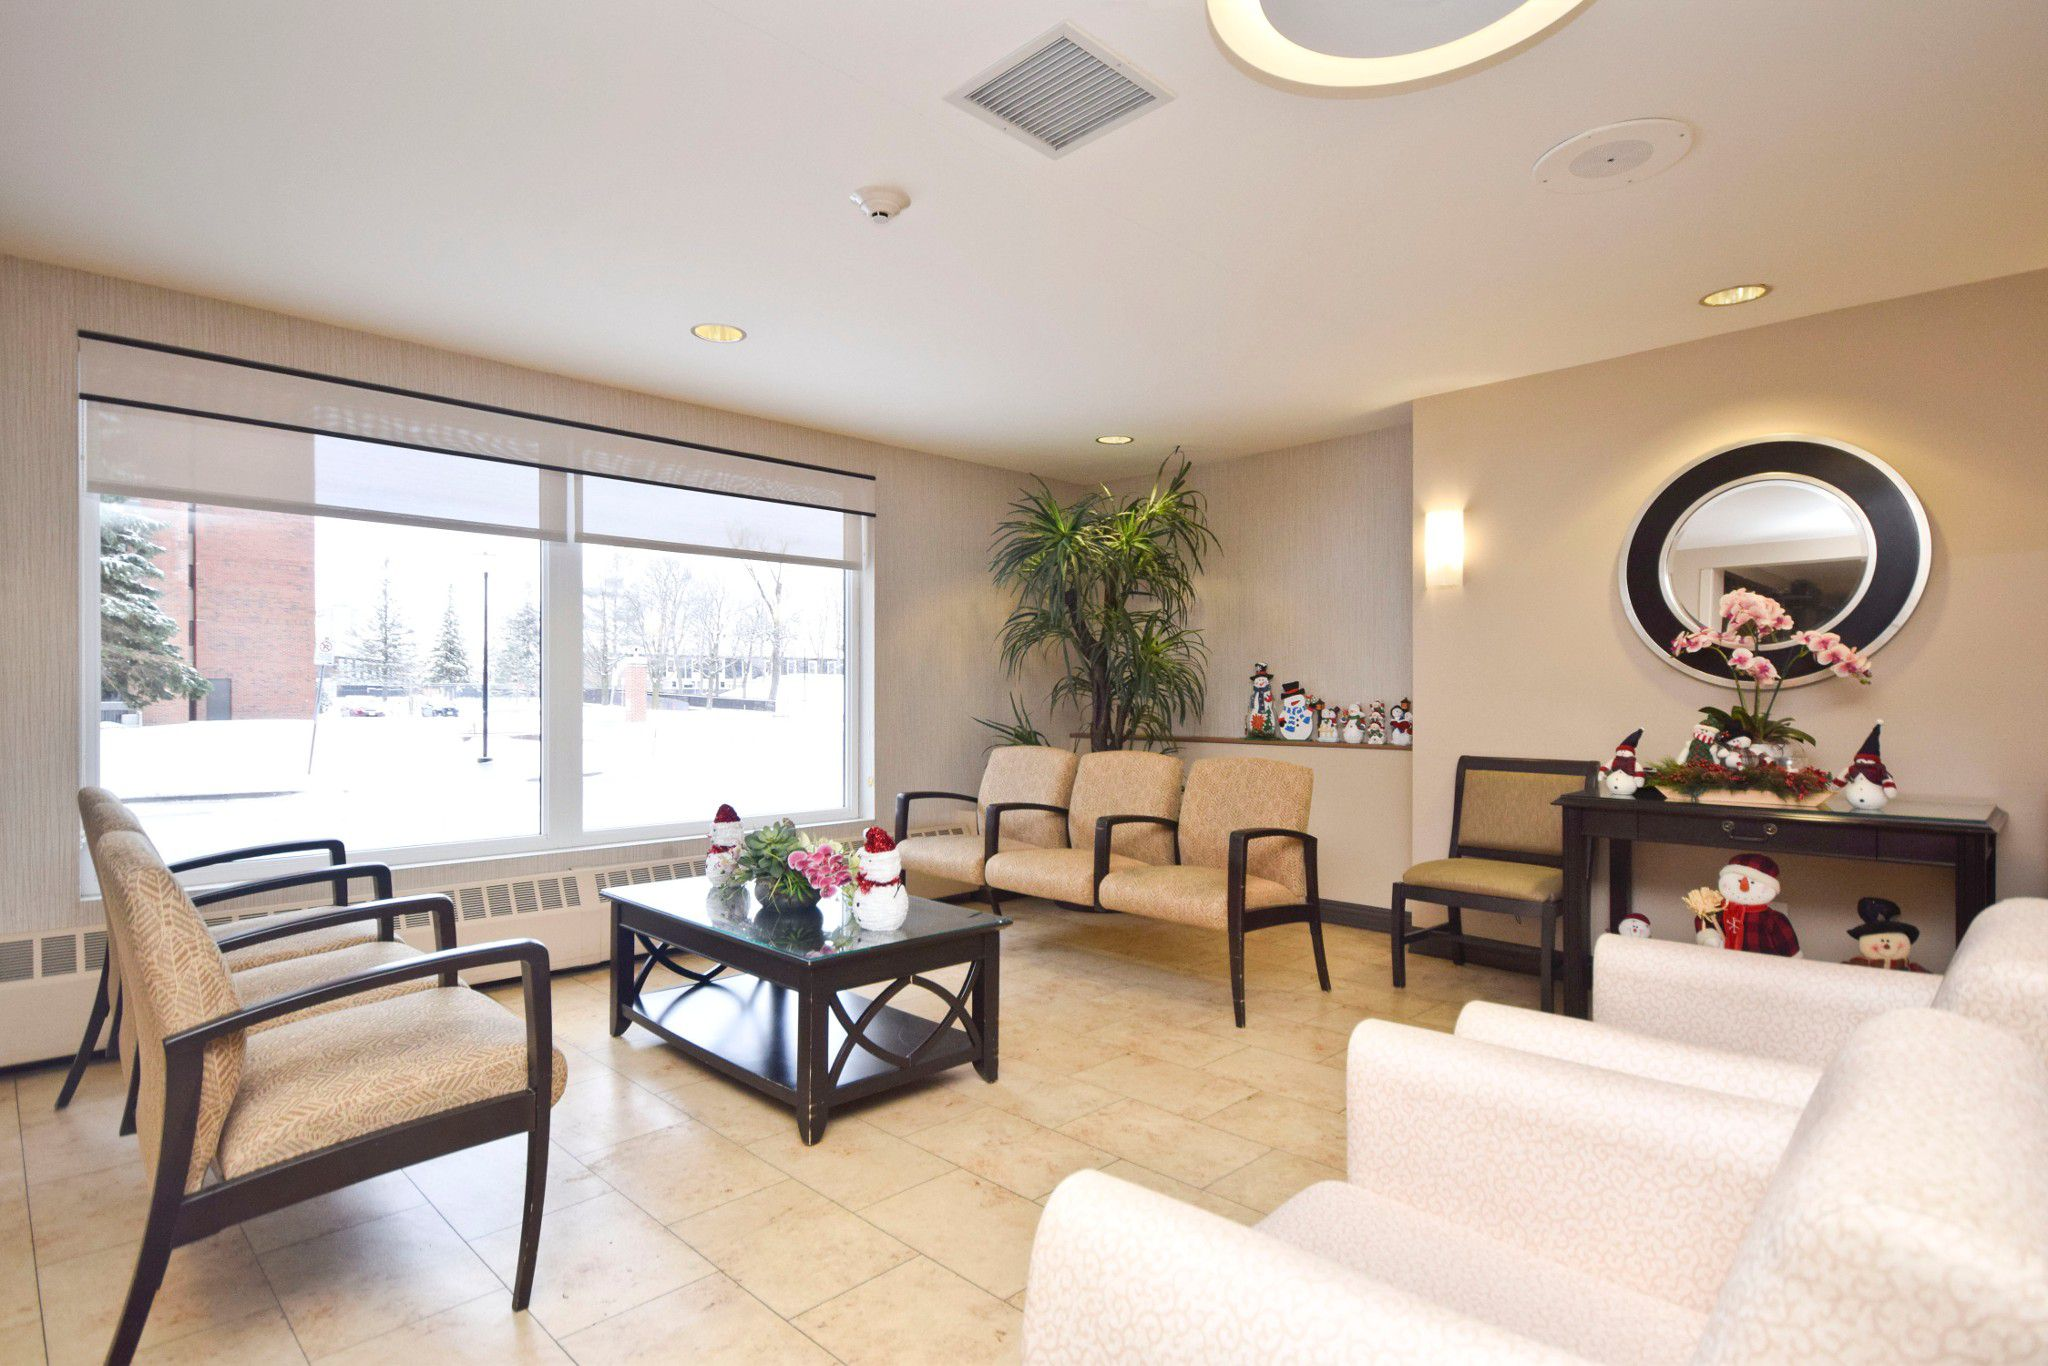 Photo 5: Photos: 515 1465 BASELINE Road in Ottawa: Copeland Park House for sale : MLS®# 1133550